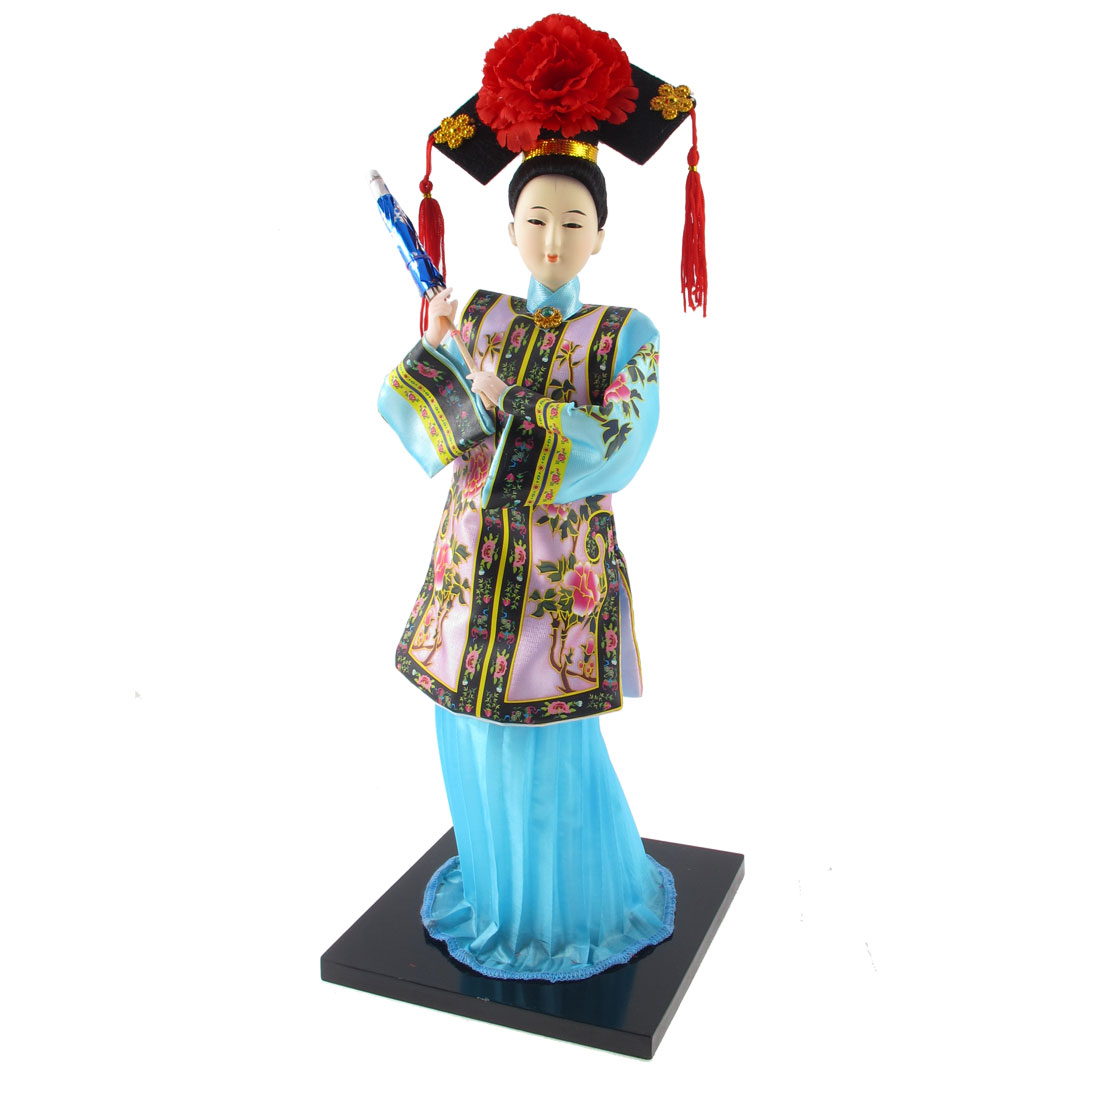 Chinese Style Beauty Statue Holding Umbrella Crafts Doll Festival Gift